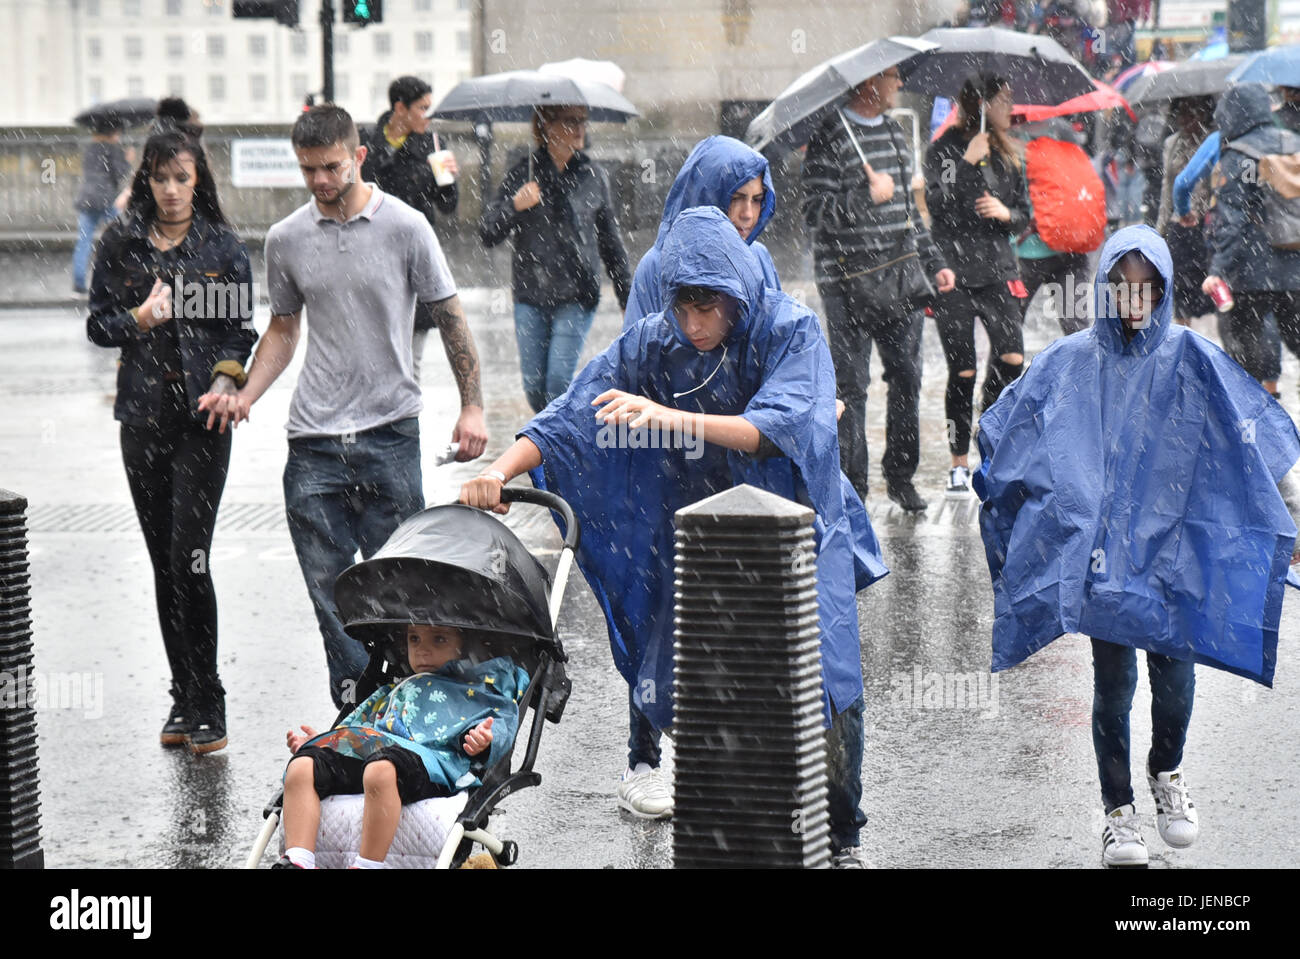 Parliament, London, UK. 27th June, 2017. A heavy downpour of rain near Parliament. Credit: Matthew Chattle/Alamy Stock Photo